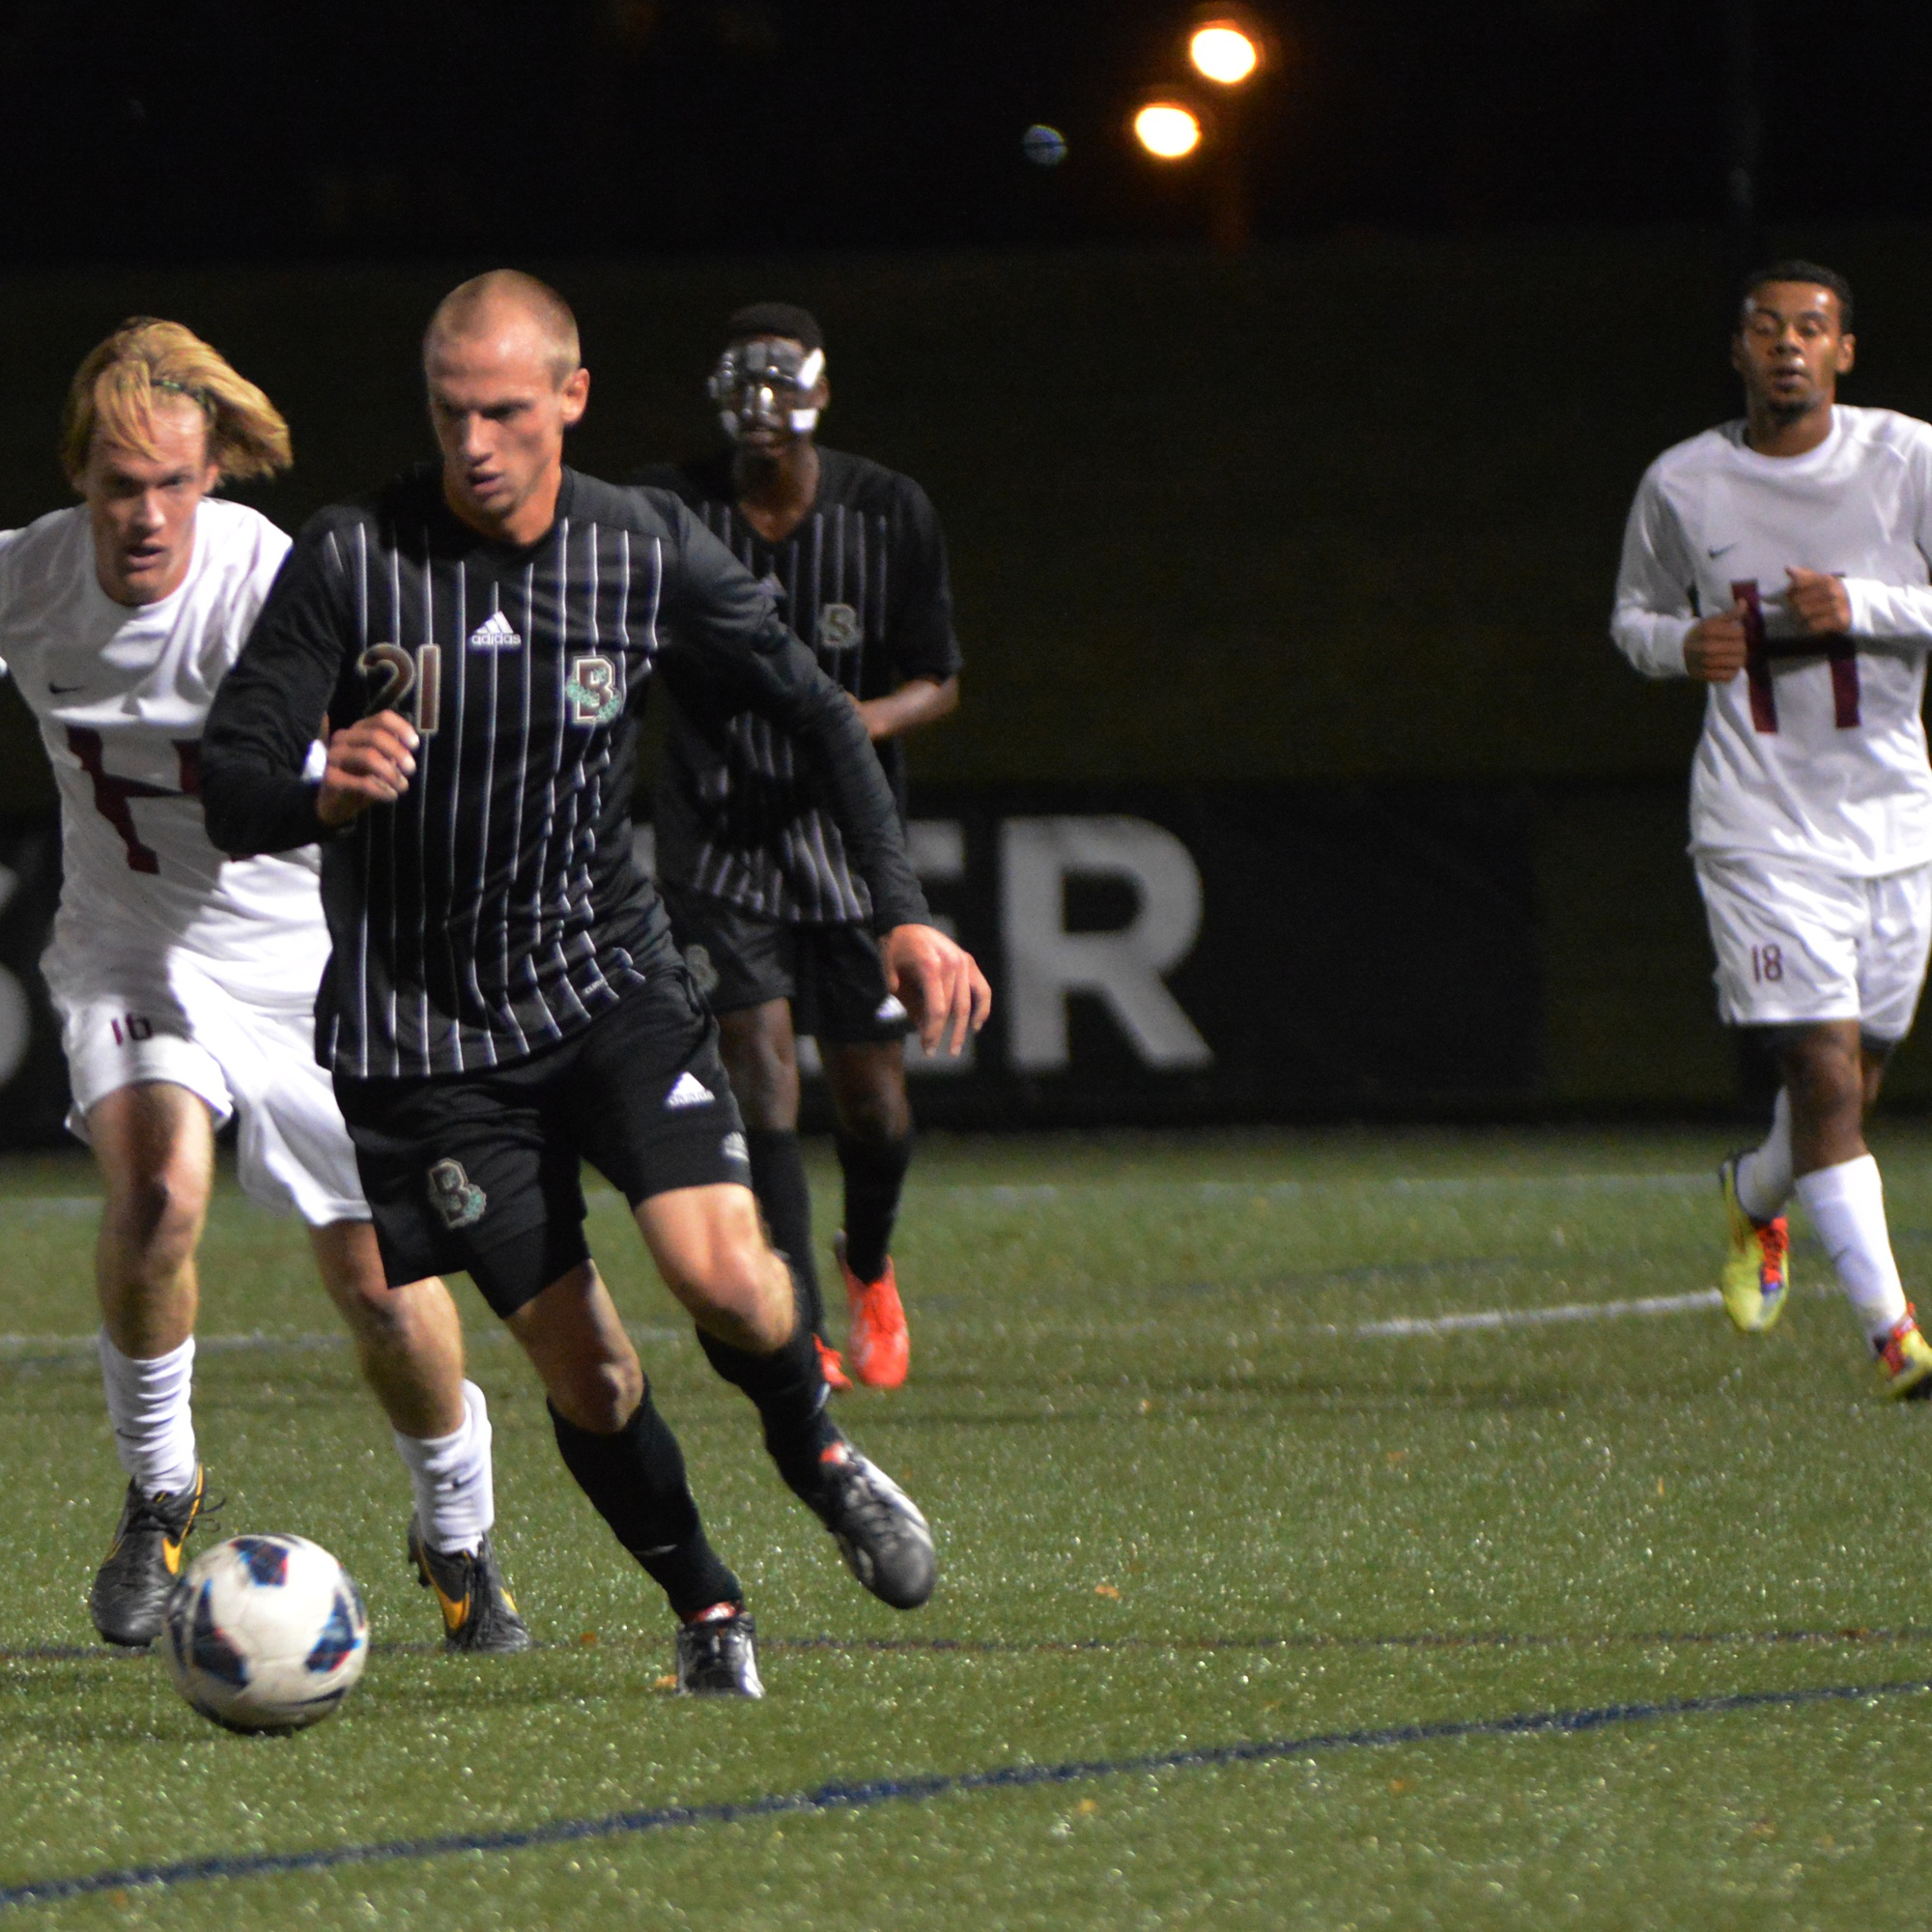 The Harvard men's soccer team lost its third straight game to open its 2014 campaign, falling to St. John's, 2-1.